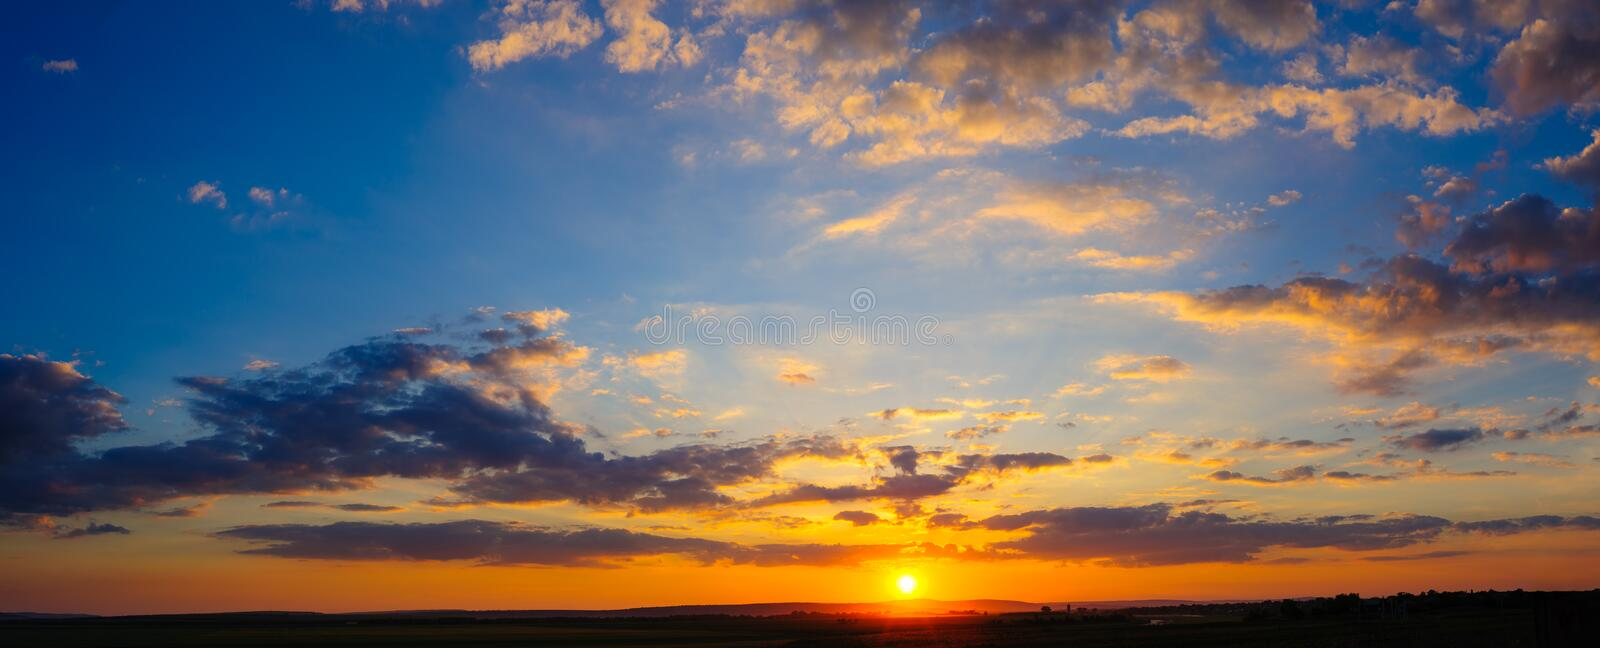 Super high resolution colorful dramatic sunset stock image